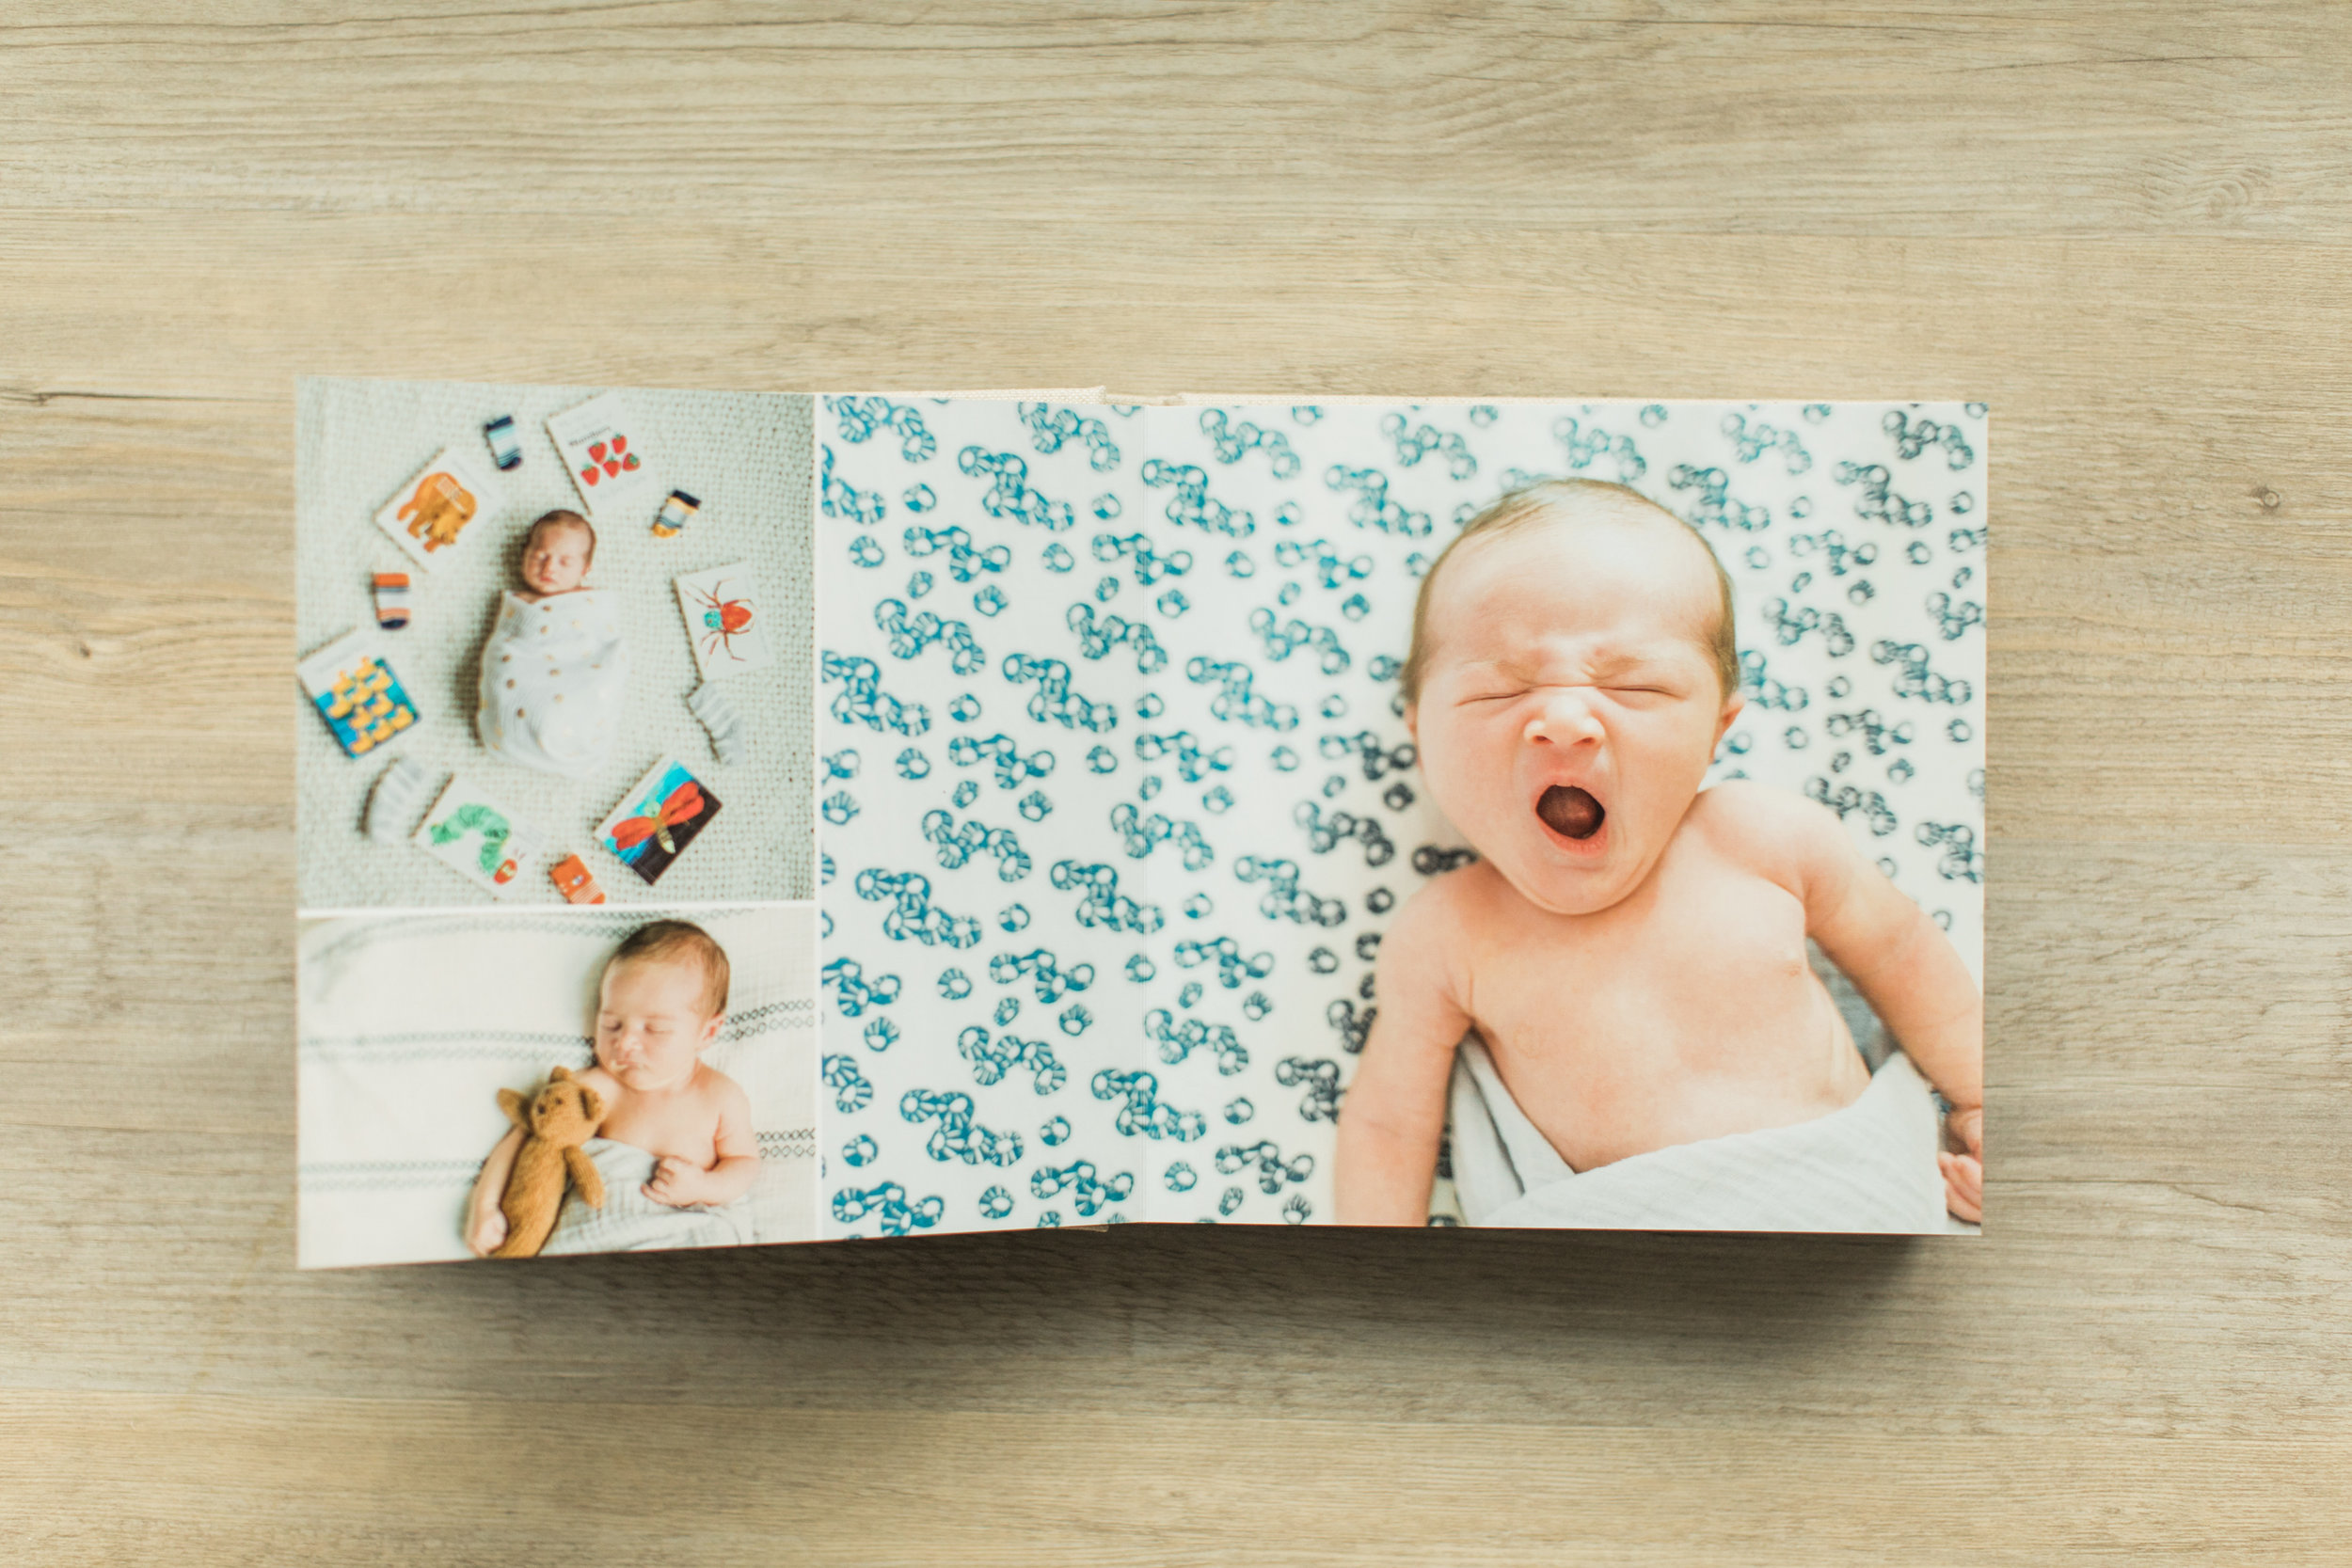 A photo of a baby yawning is inside of a baby photo album.